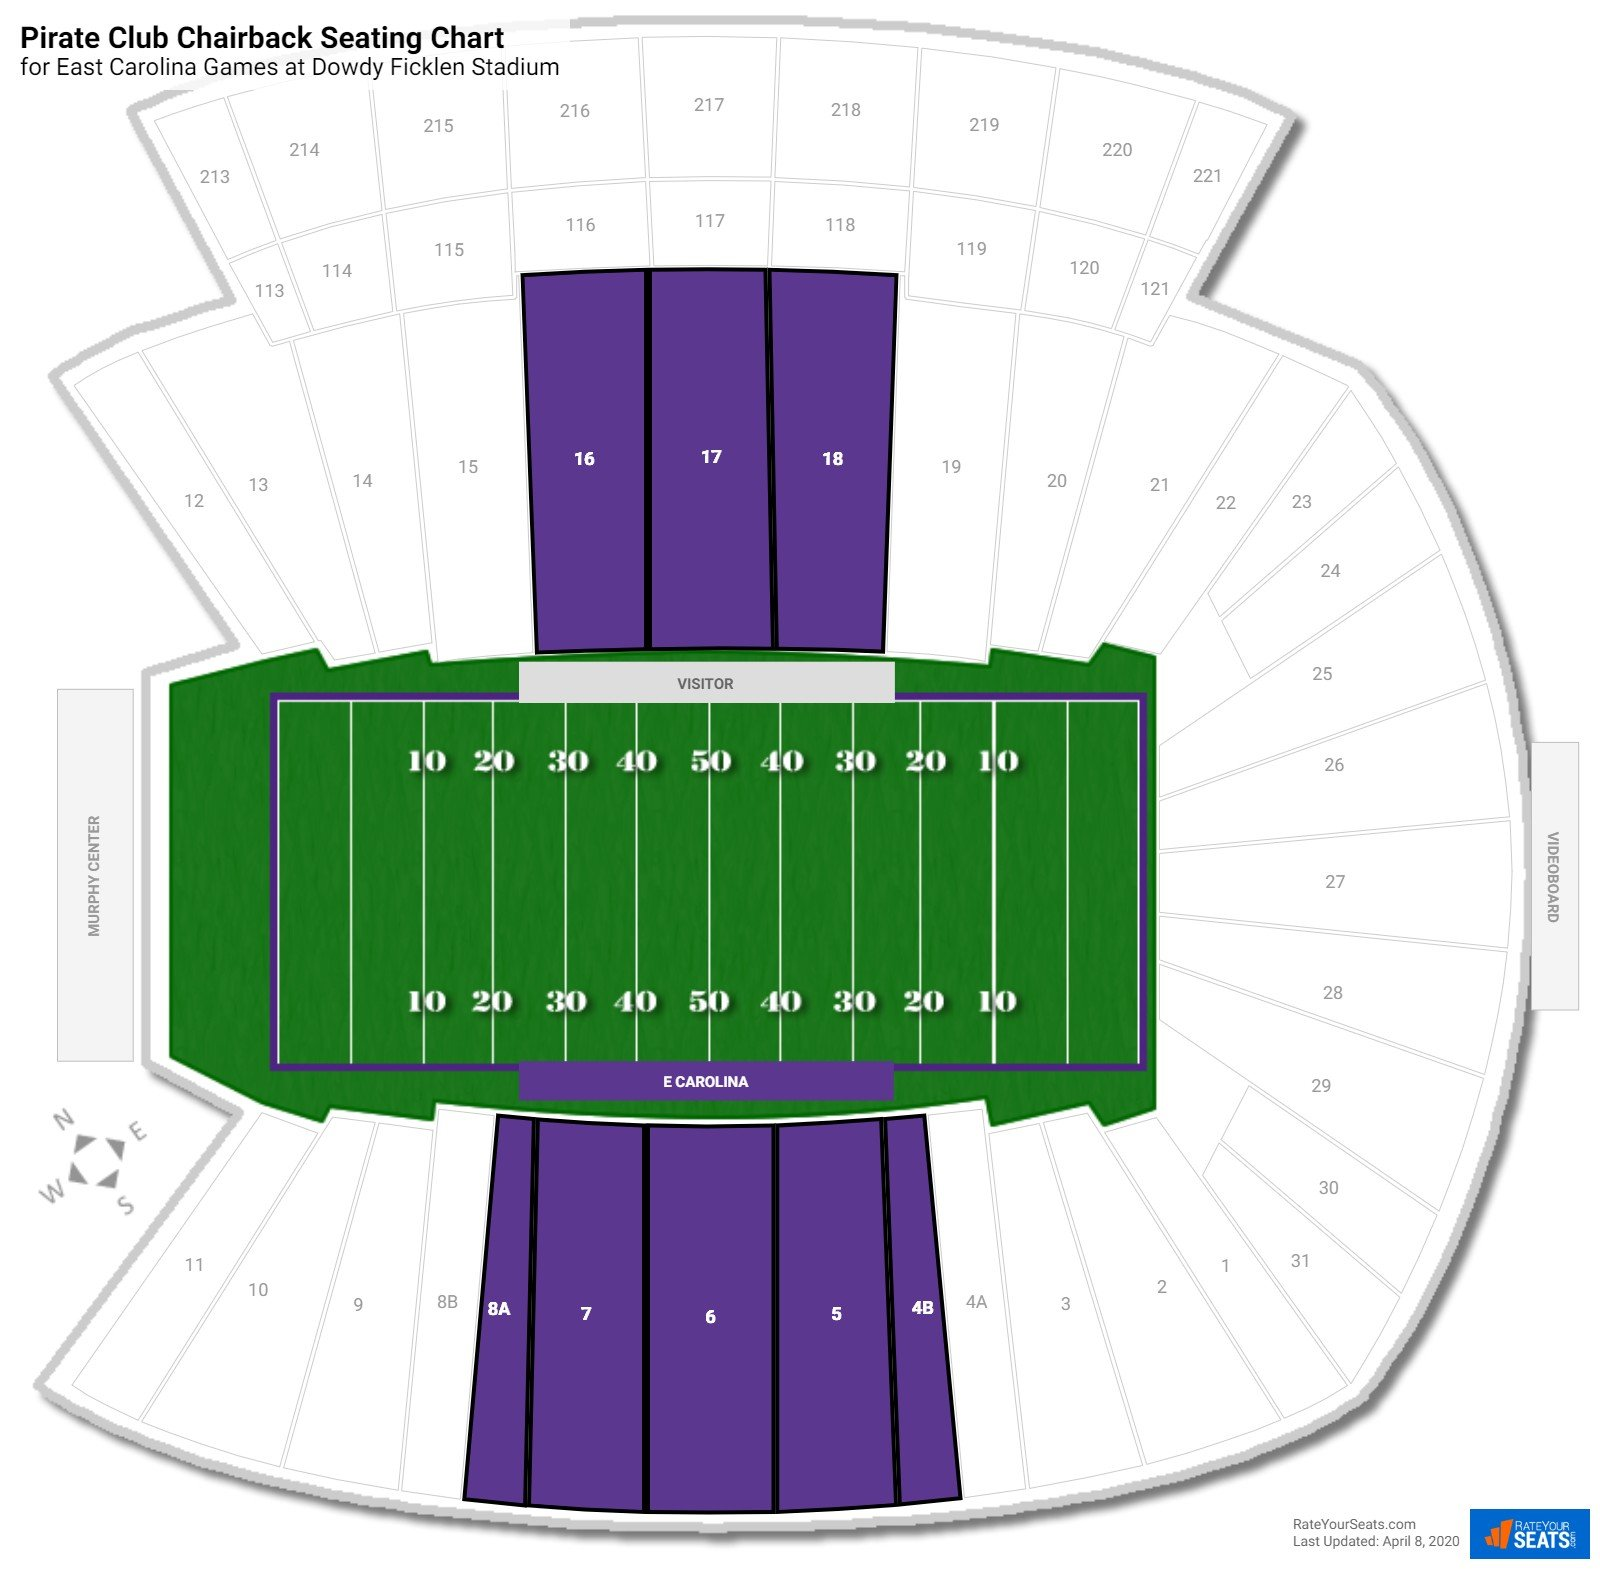 Dowdy Ficklen Stadium Pirate Club Chairback seating chart